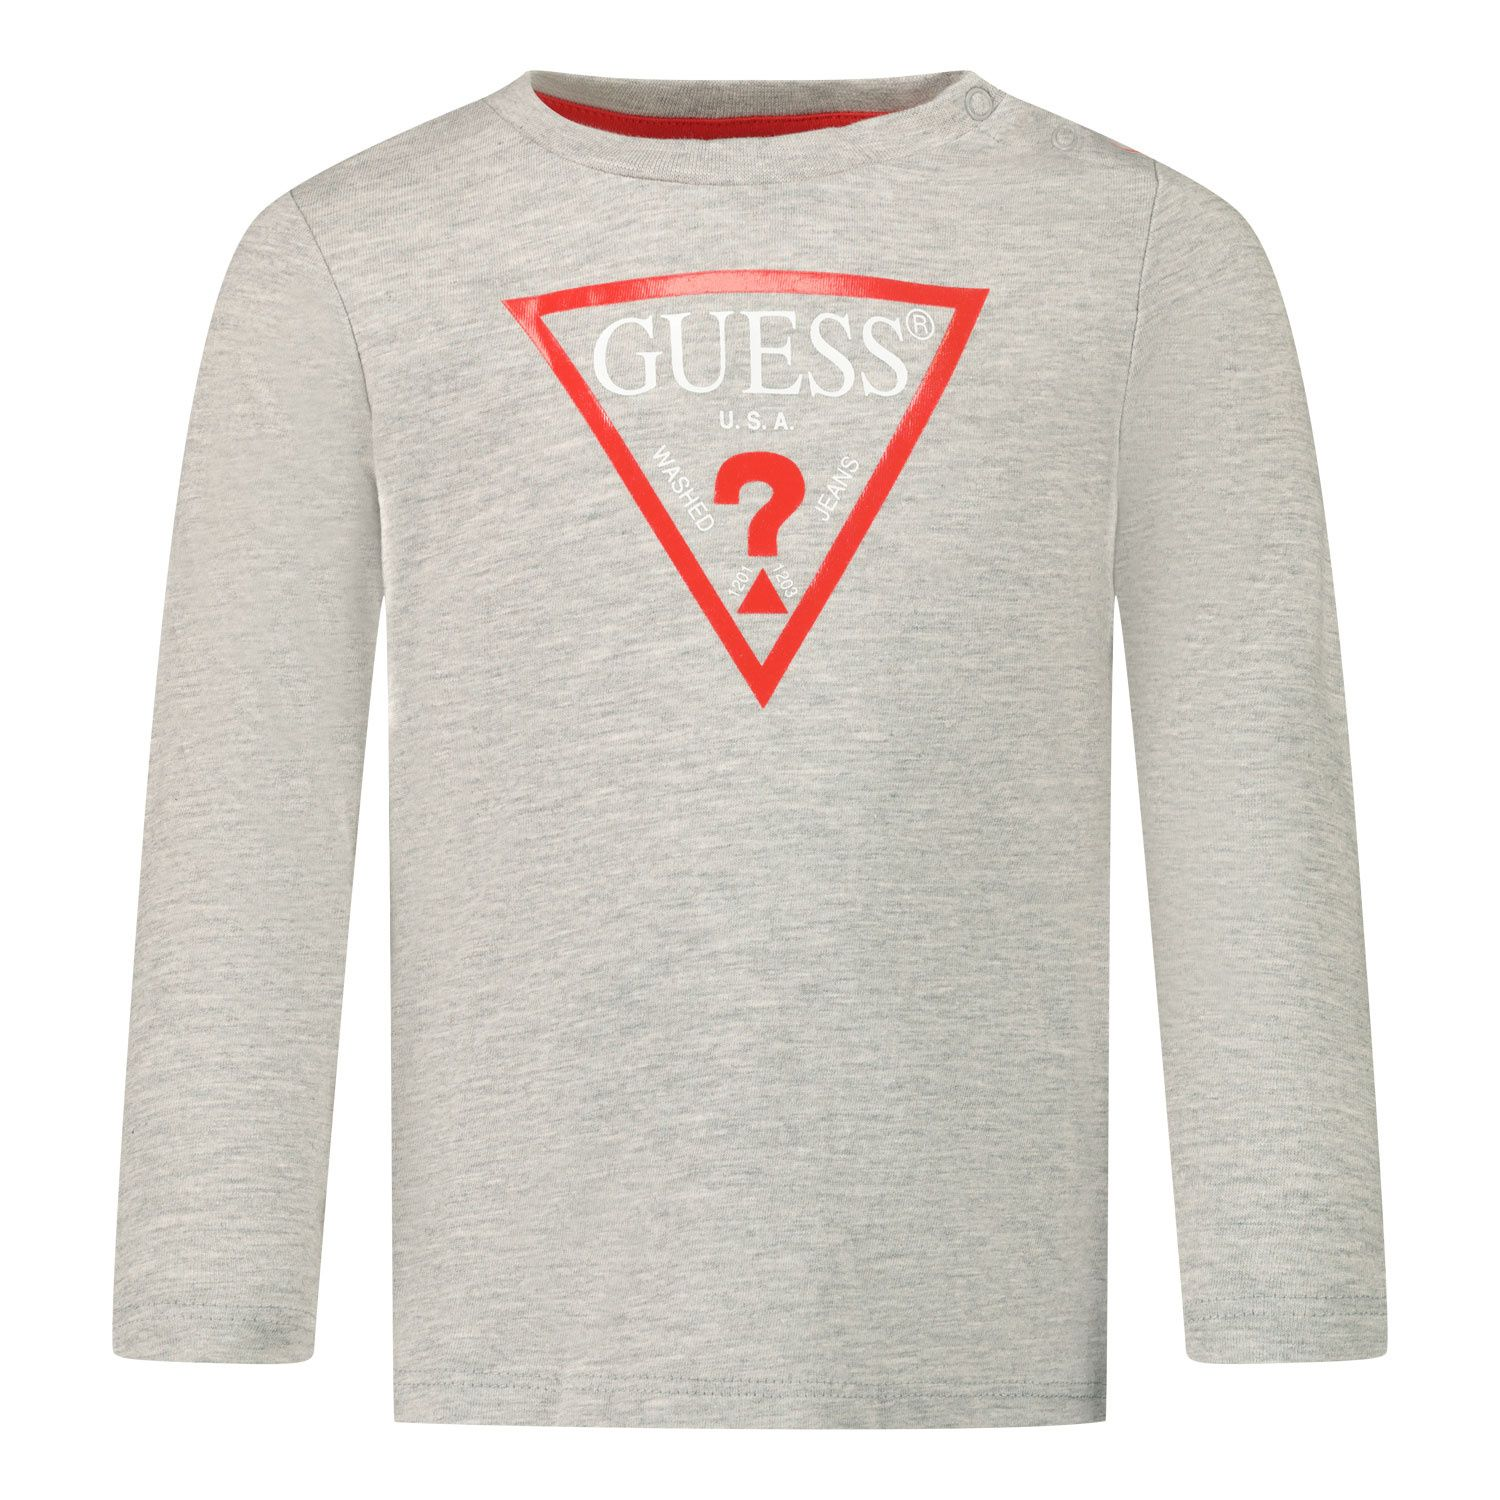 Picture of Guess I84I09/K5M20 baby shirt light gray